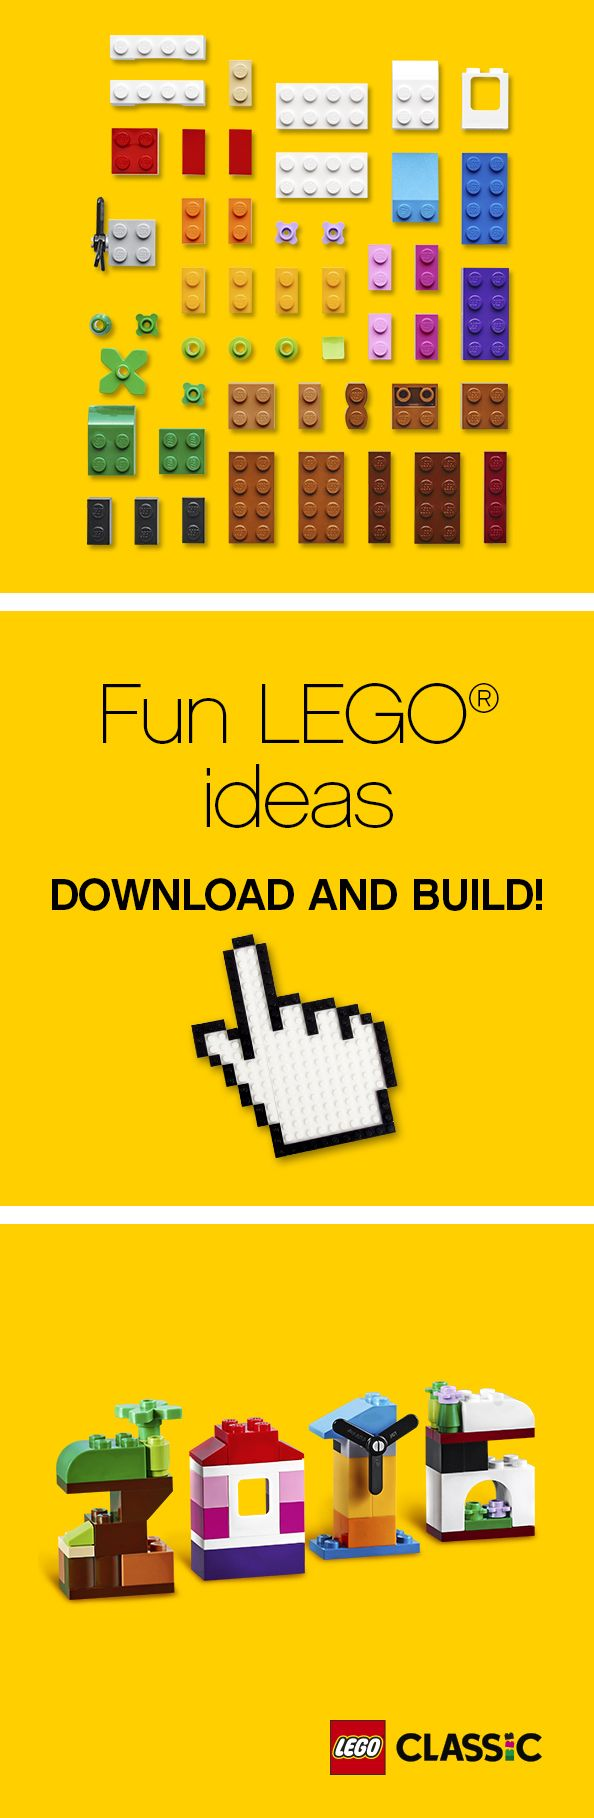 Celebrate the New Year with this simple and festive LEGO build. Your family will love this festive gift or activity.